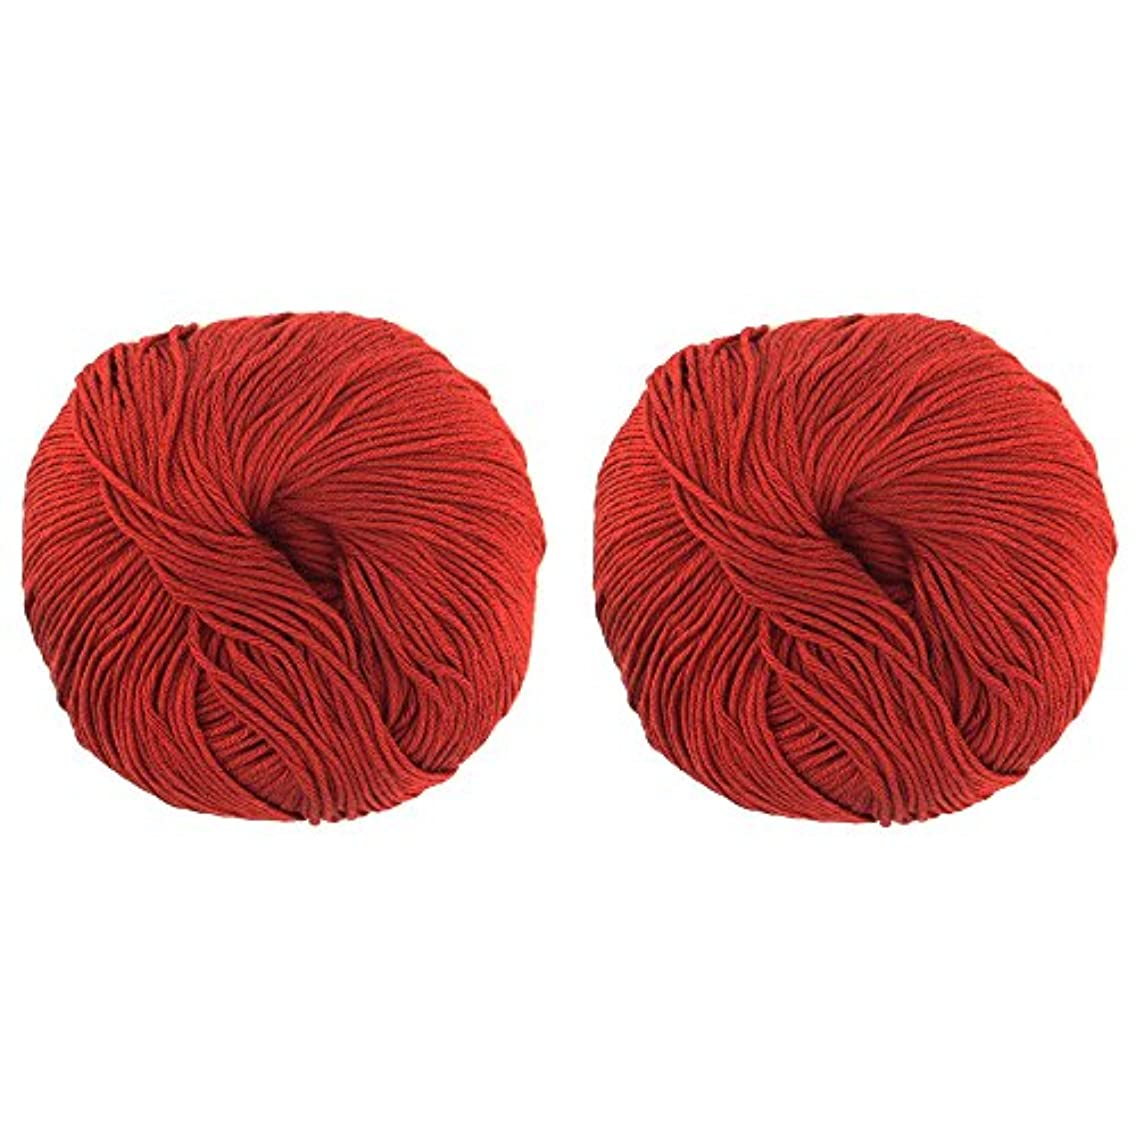 JubileeYarn Bamboo Cotton Blend Sport 4 Ply Yarn - 100g/skein - Red Hot Red - 2 Skeins